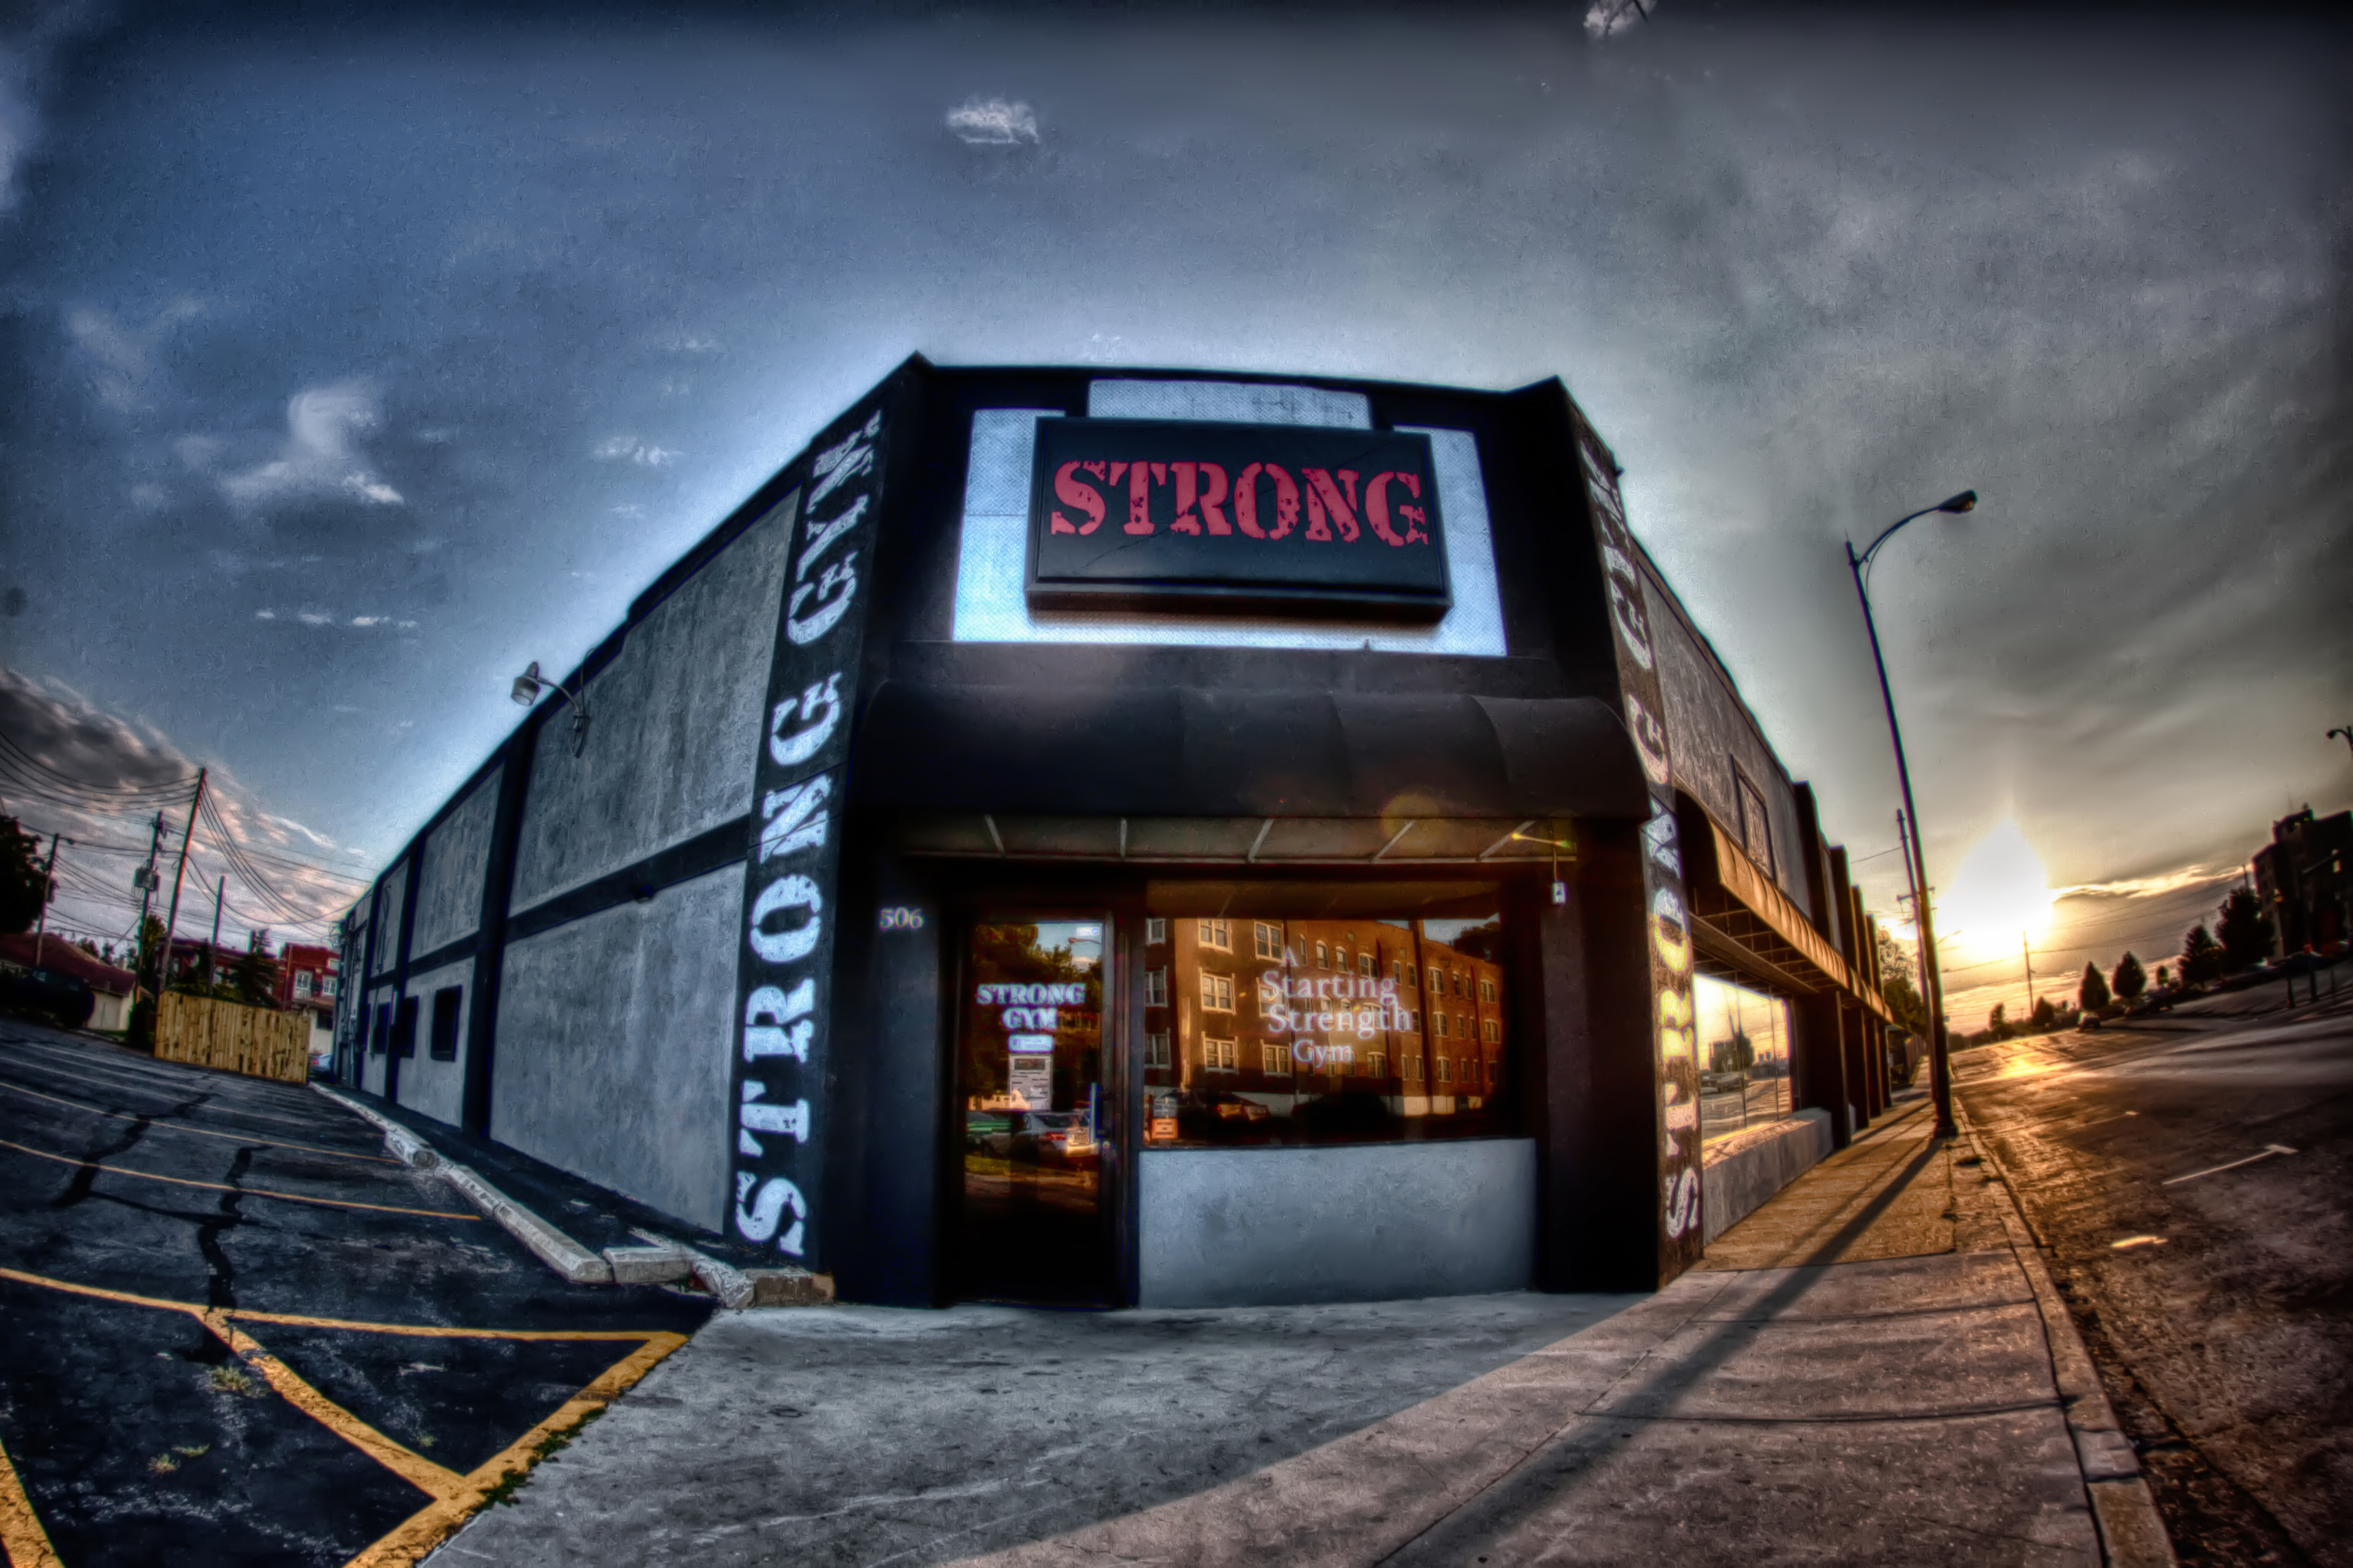 Strong gym springfield anotherhackedlife